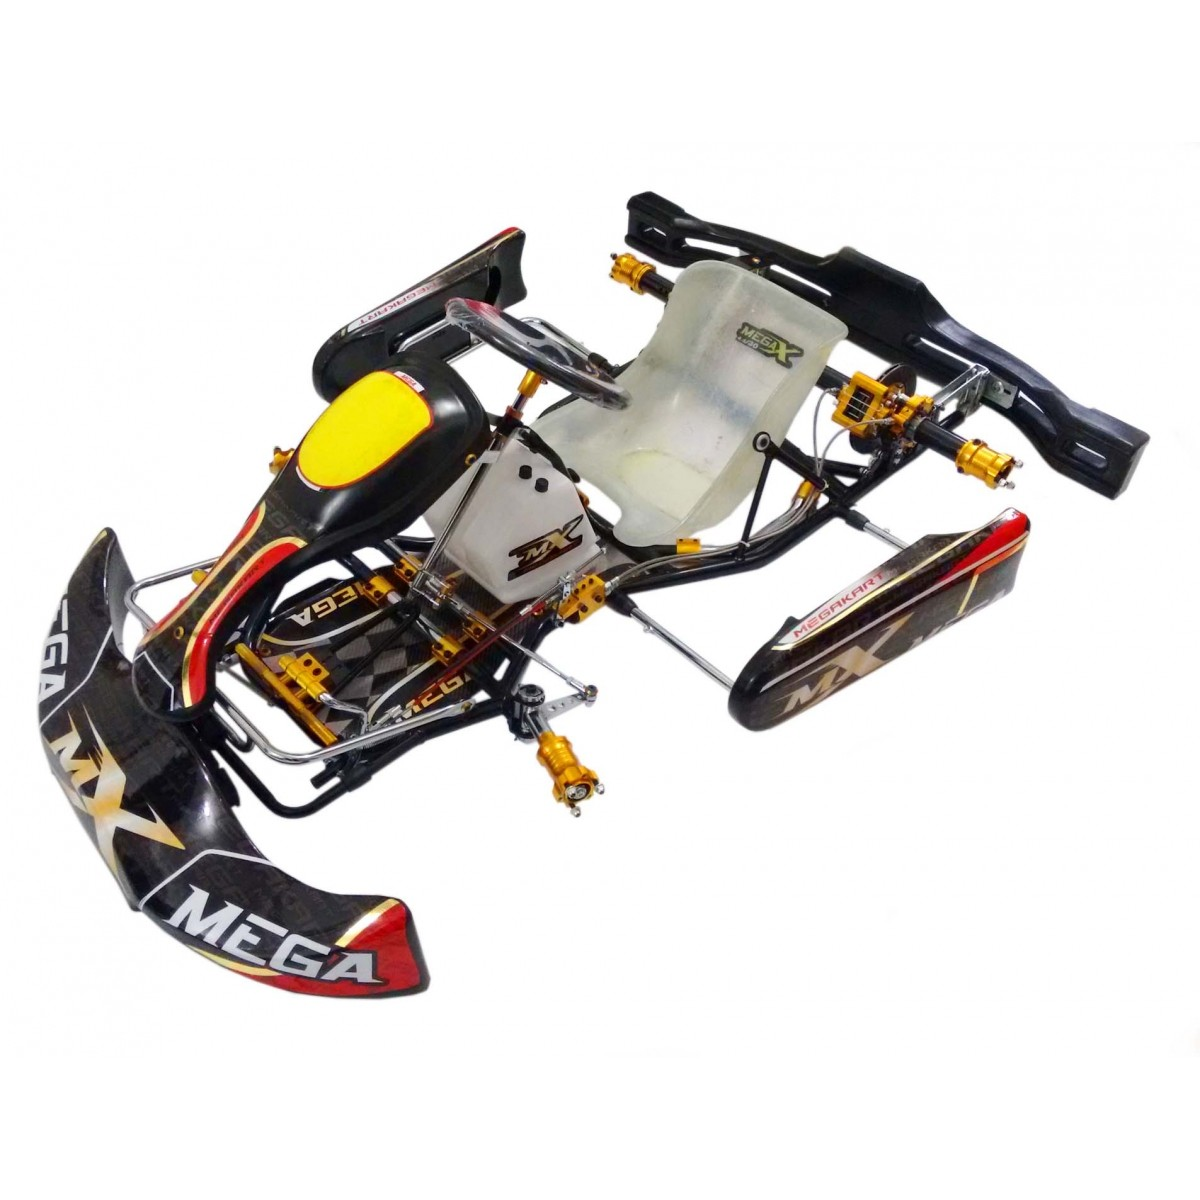 Kart Black Gold Shiffter  - 858  - Mega Kart